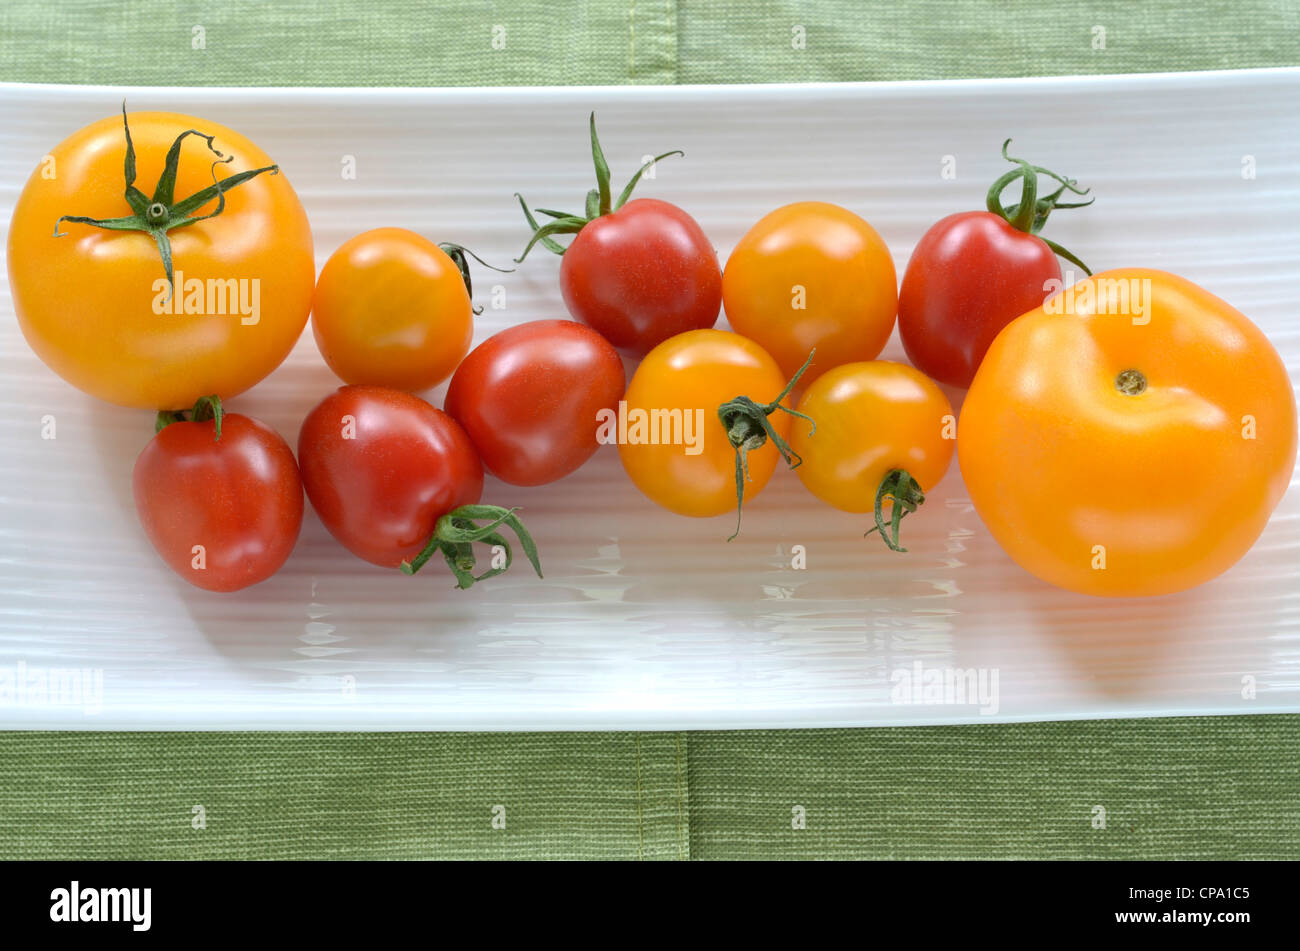 Red and yellow cherry and medium size tomatoes on white oblong dish - Stock Image